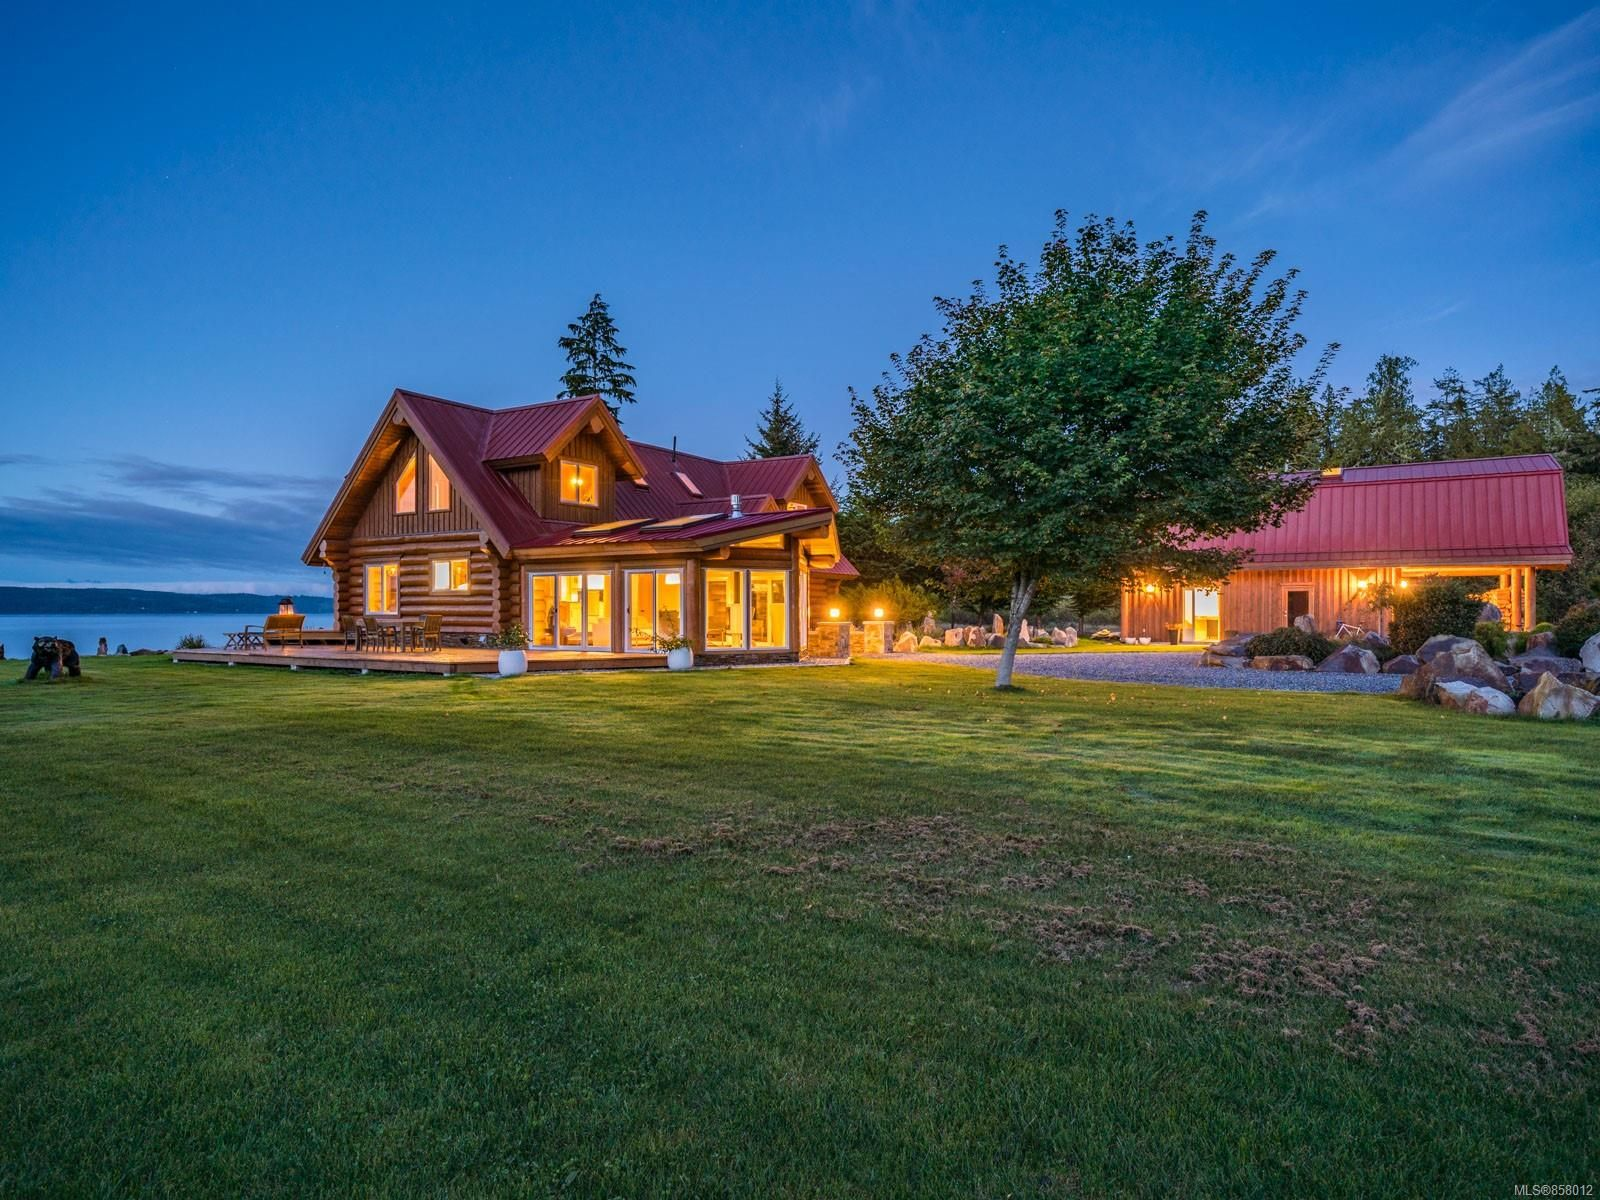 Photo 4: Photos: 6030 MINE Rd in : NI Port McNeill House for sale (North Island)  : MLS®# 858012